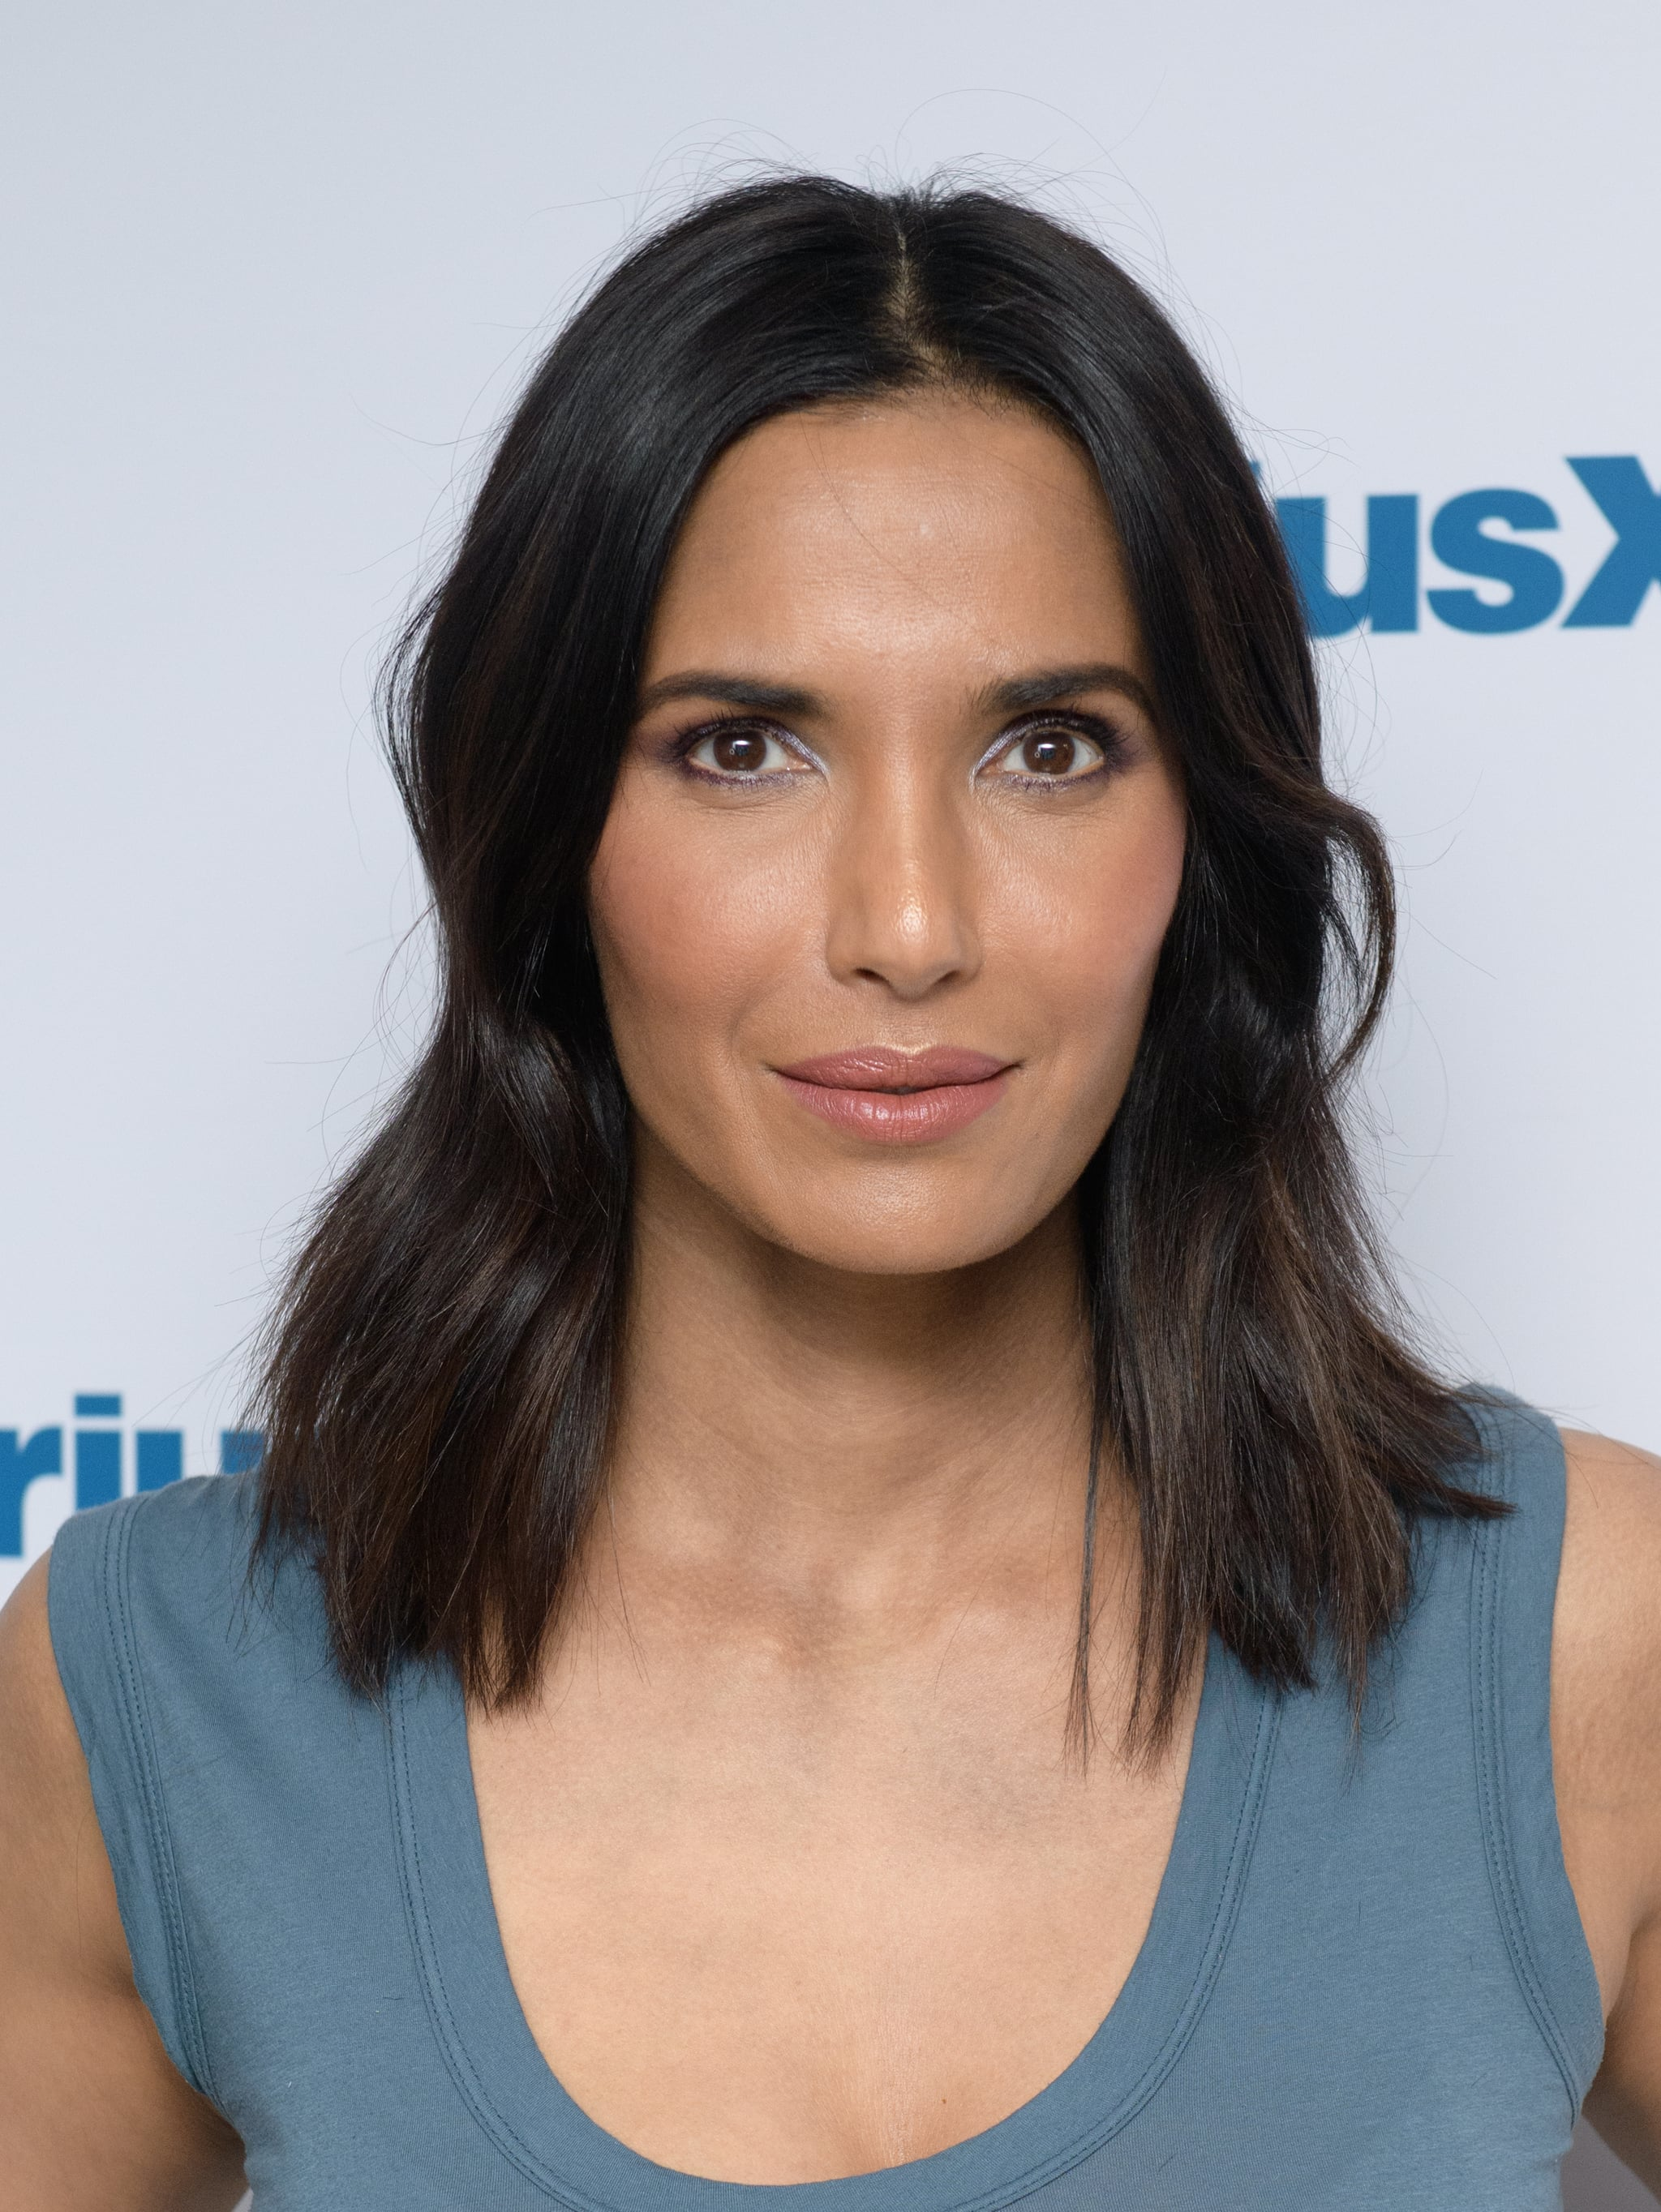 NEW YORK, NY - MARCH 08:  Padma Lakshmi visits the SiriusXM Studios on March 8, 2018 in New York City.  (Photo by Noam Galai/Getty Images)